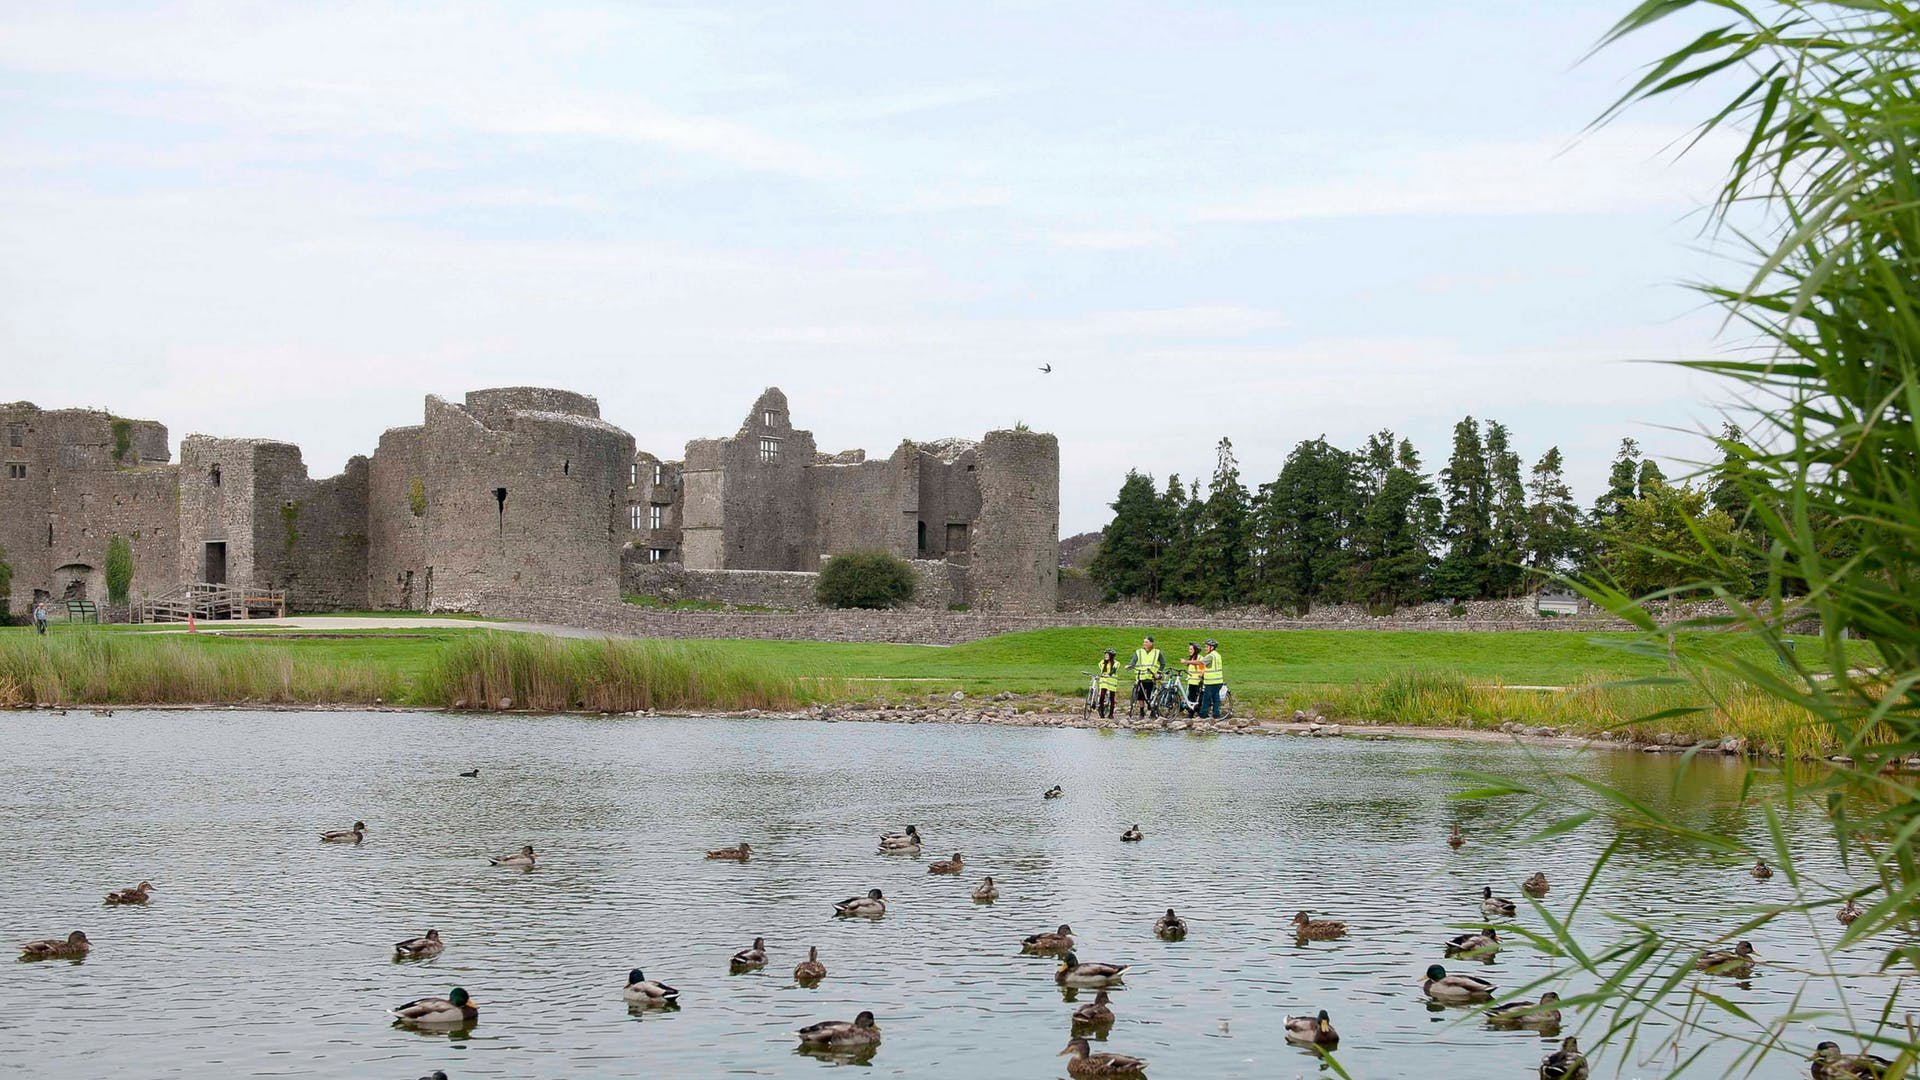 Explore Roscommon's heritage while staying at Gleesons Restaurant & Rooms, Roscommon